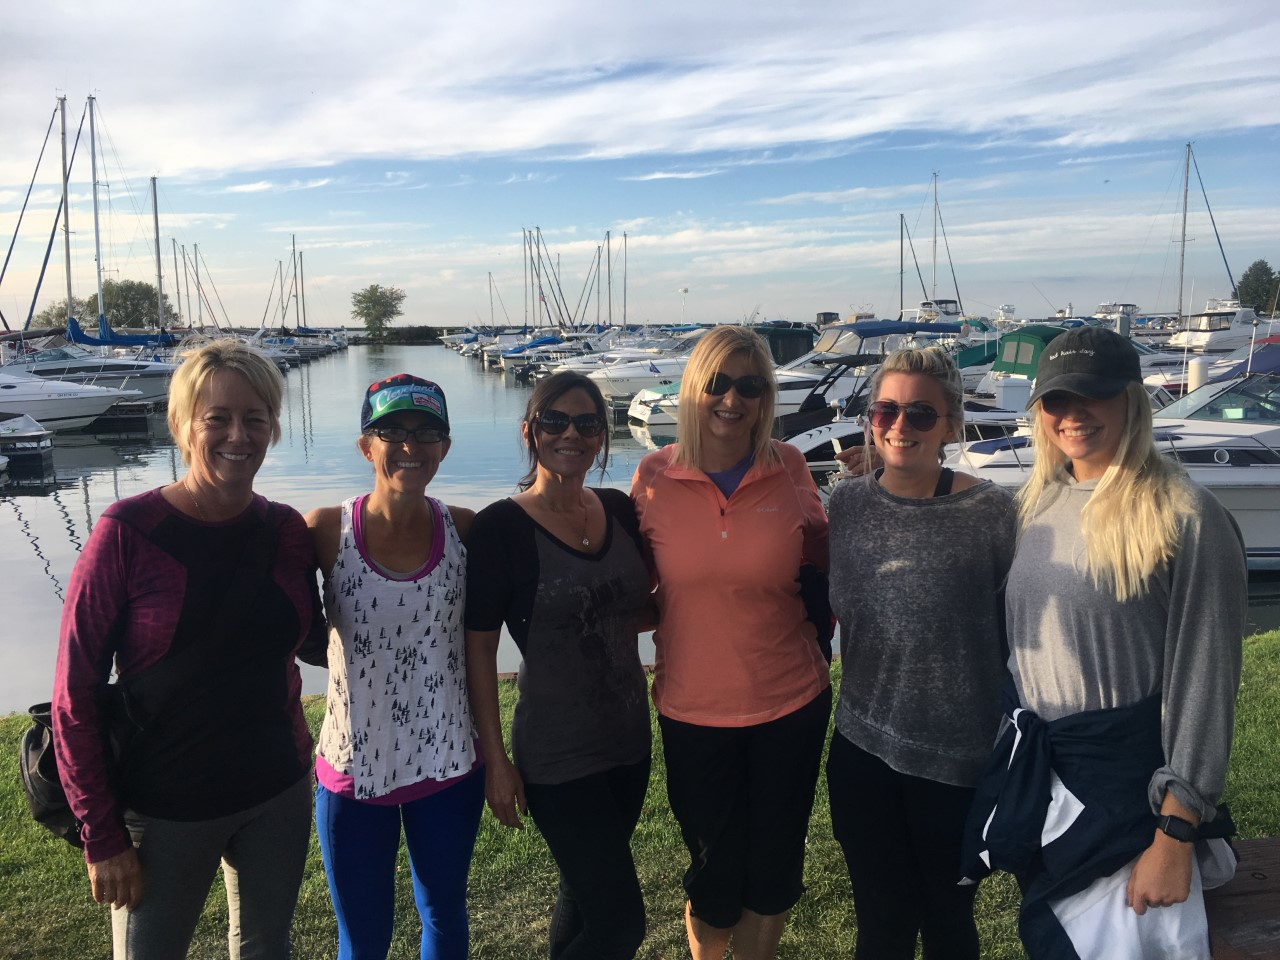 Ladies Adventure Group sunset sailors @ Lake Erie, Cleveland | Sept 24, 2019